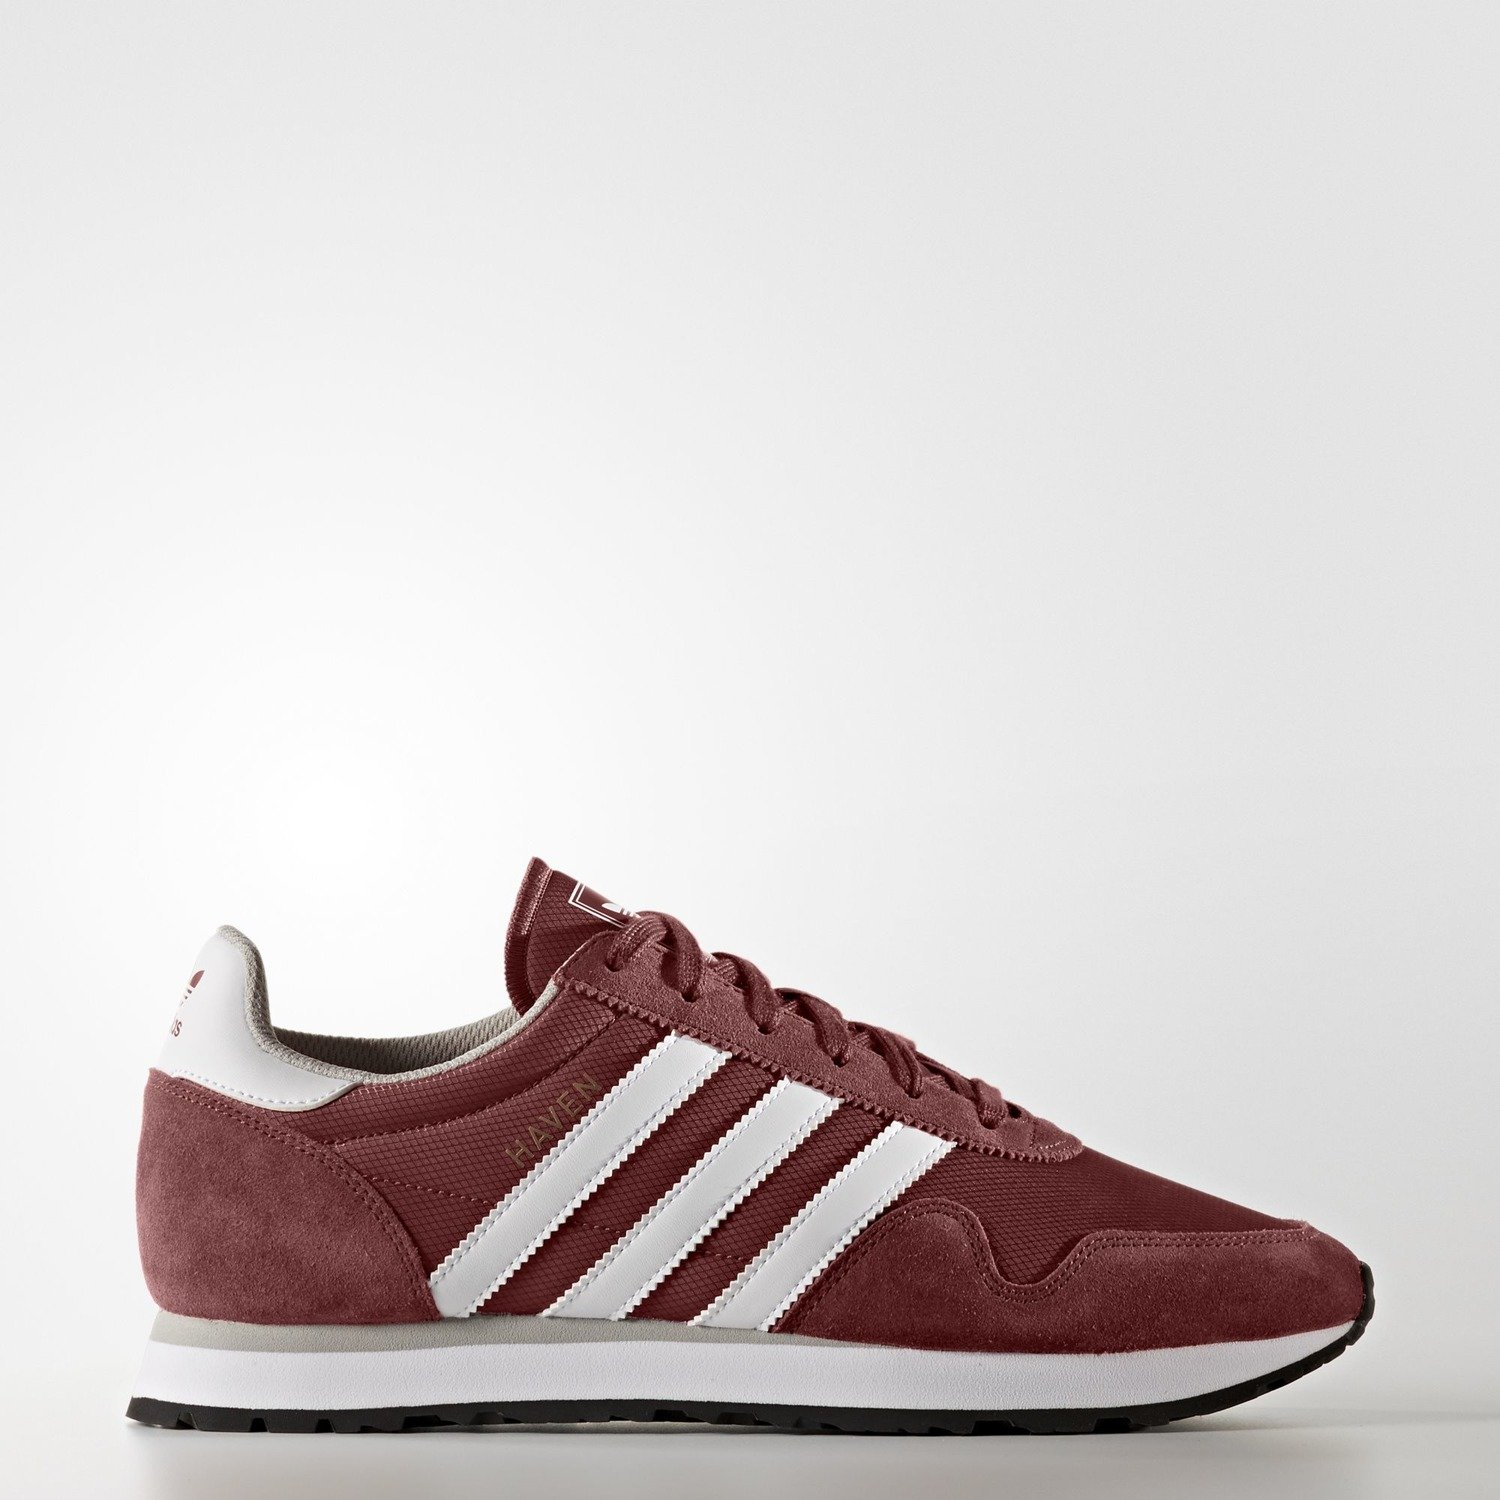 new style 033d1 ca5c0 ... Buty męskie adidas Haven Mystery Red BB1281 ...